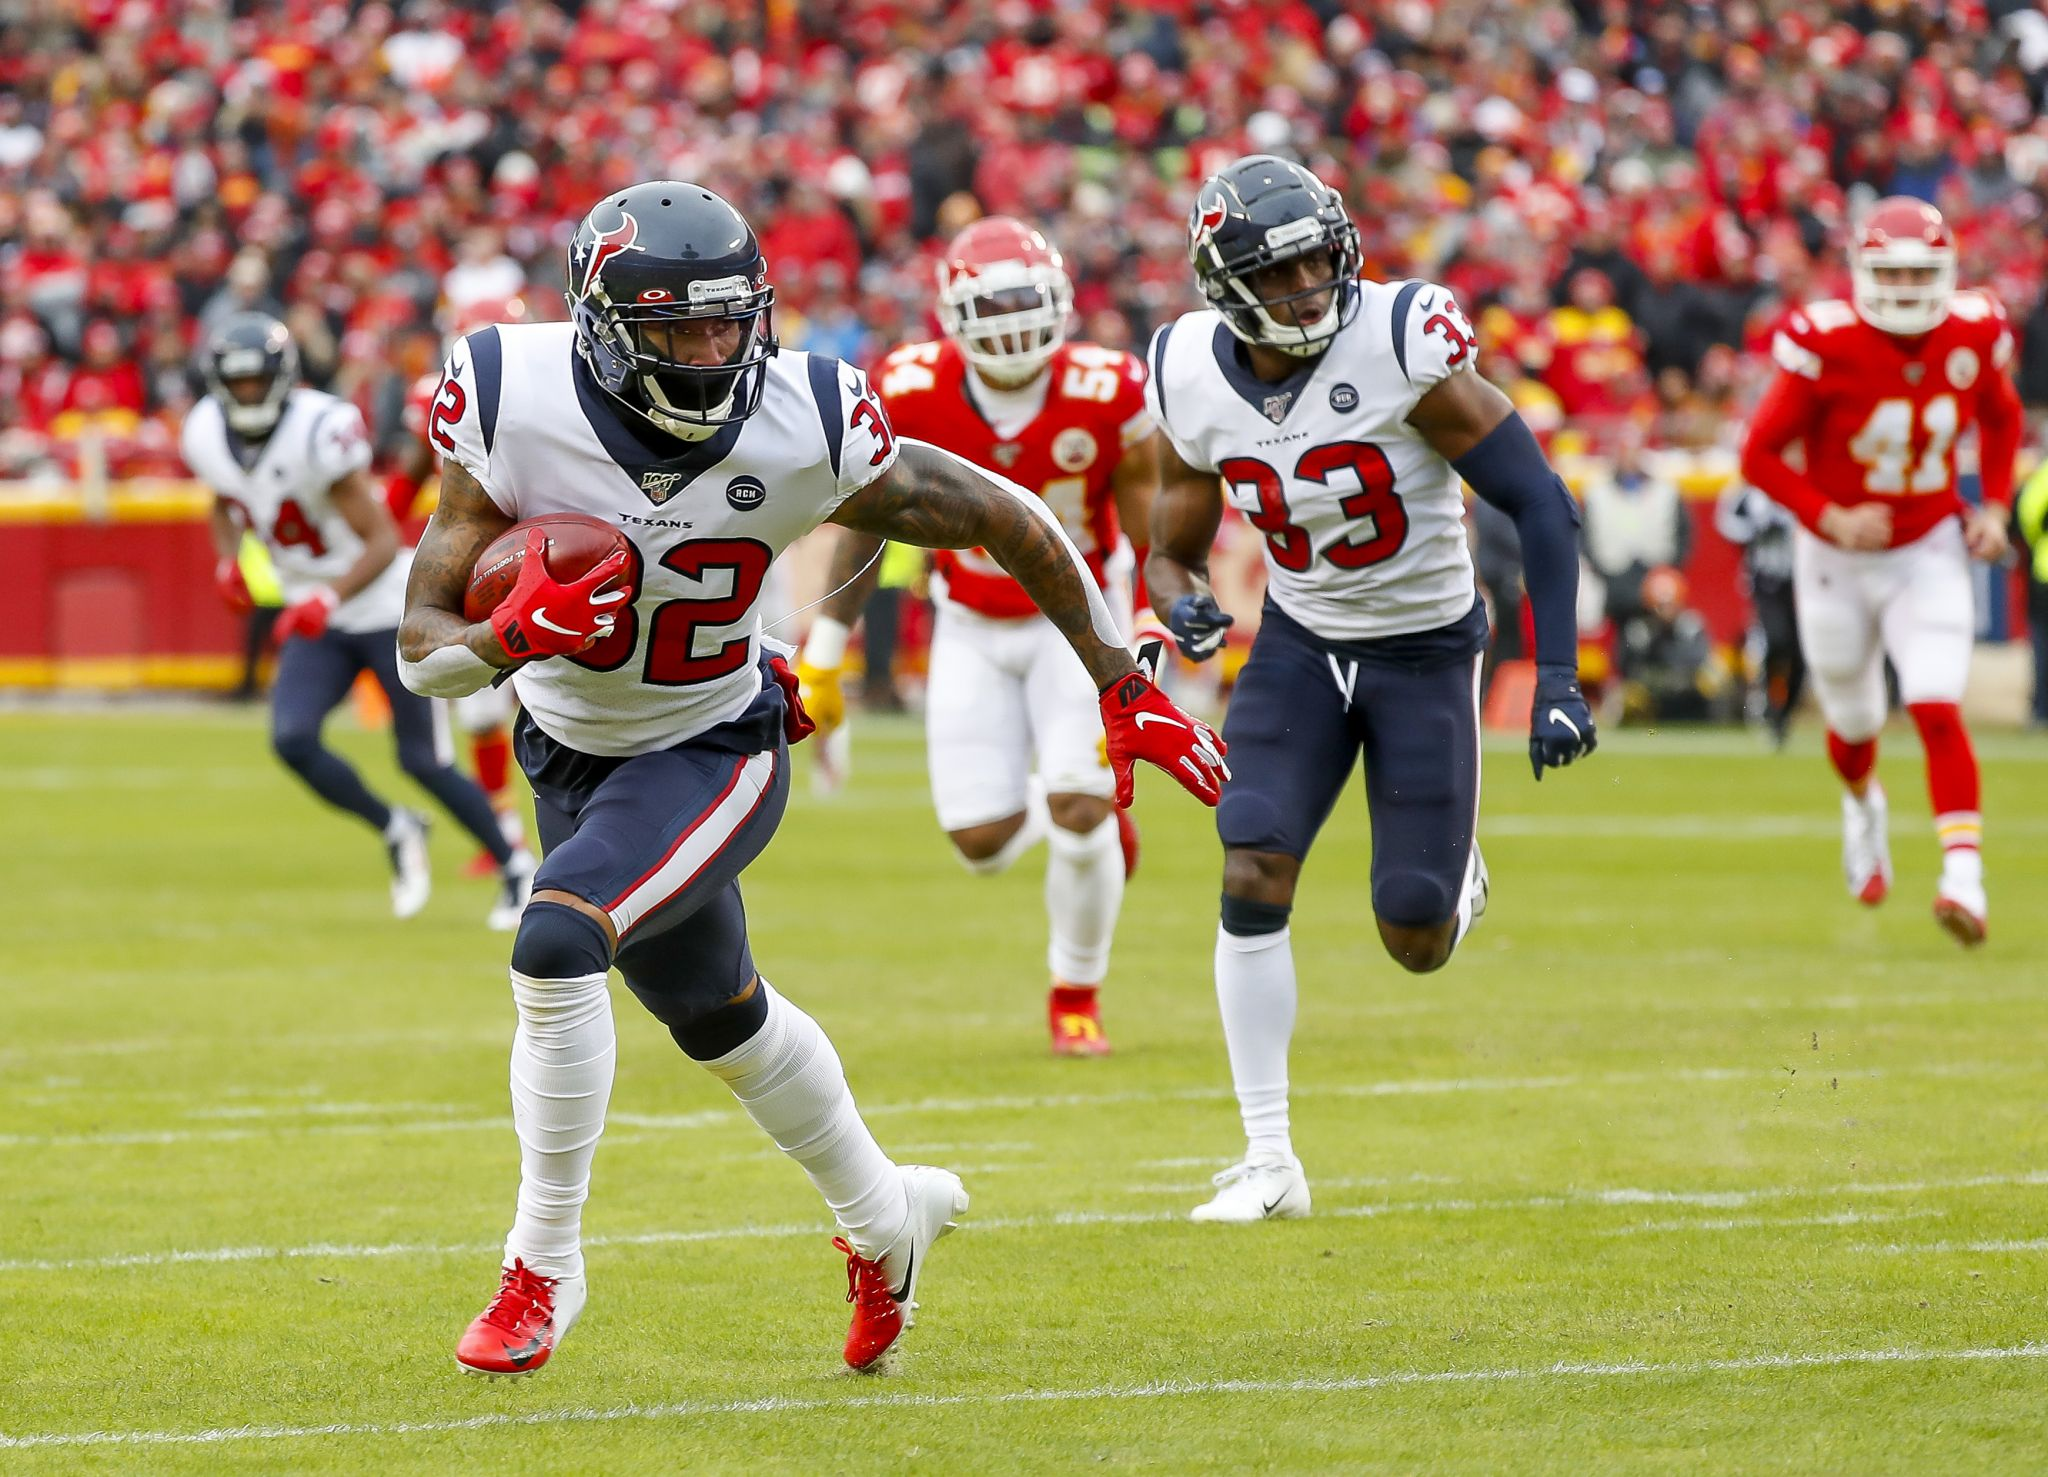 Reeling from Chiefs game, Texans' secondary still in flux